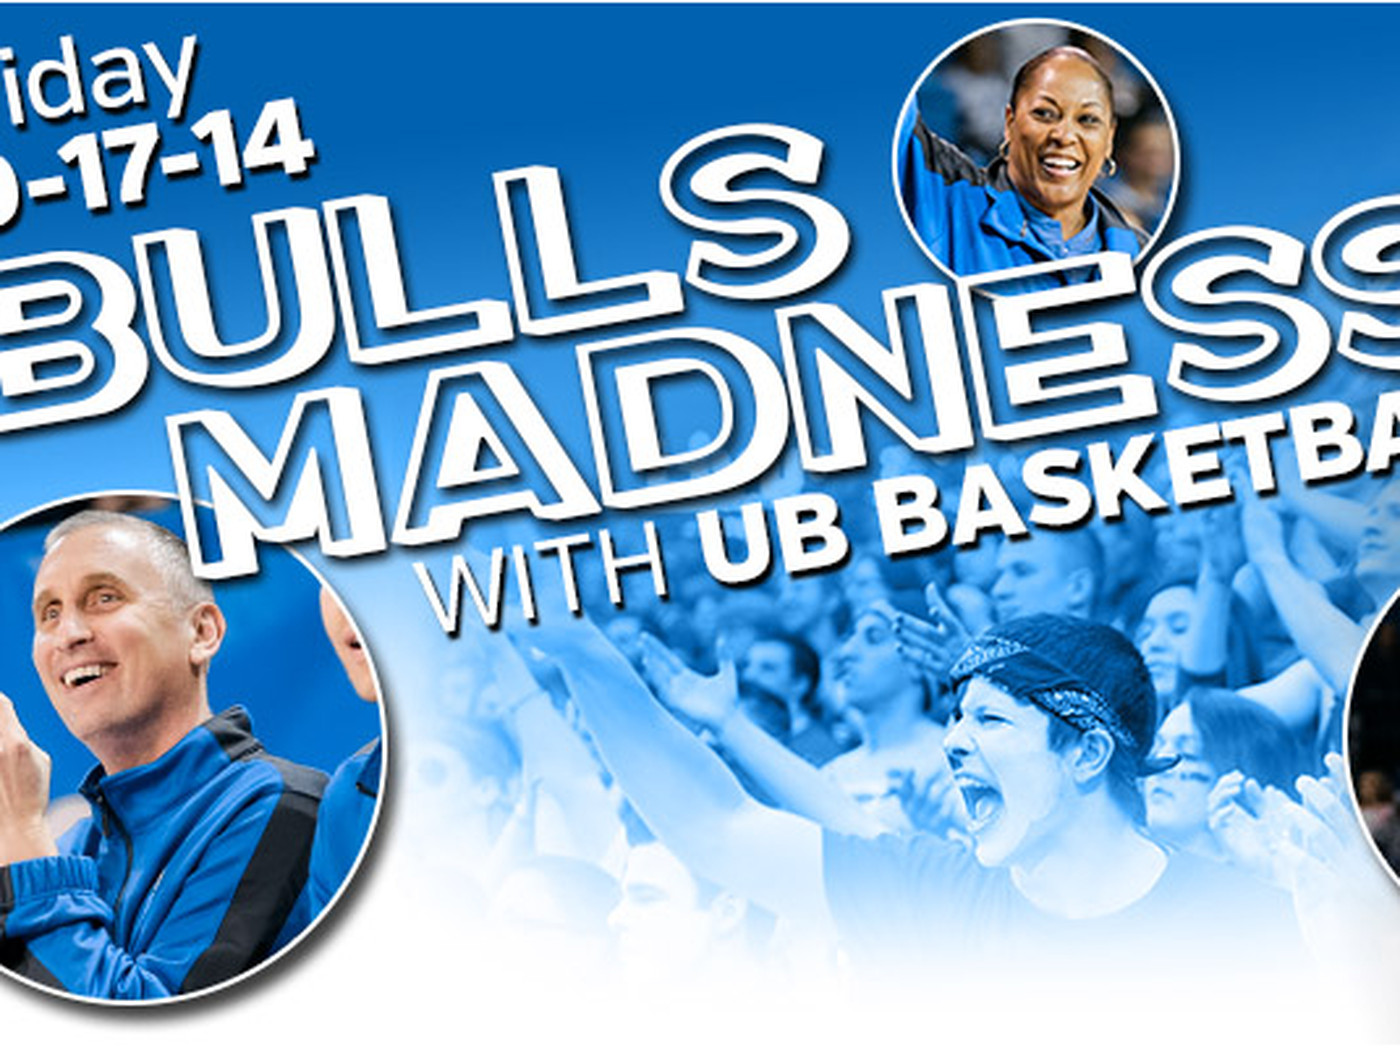 Buffalo Basketball Kicks Off The Season With Bulls Madness Bull Run